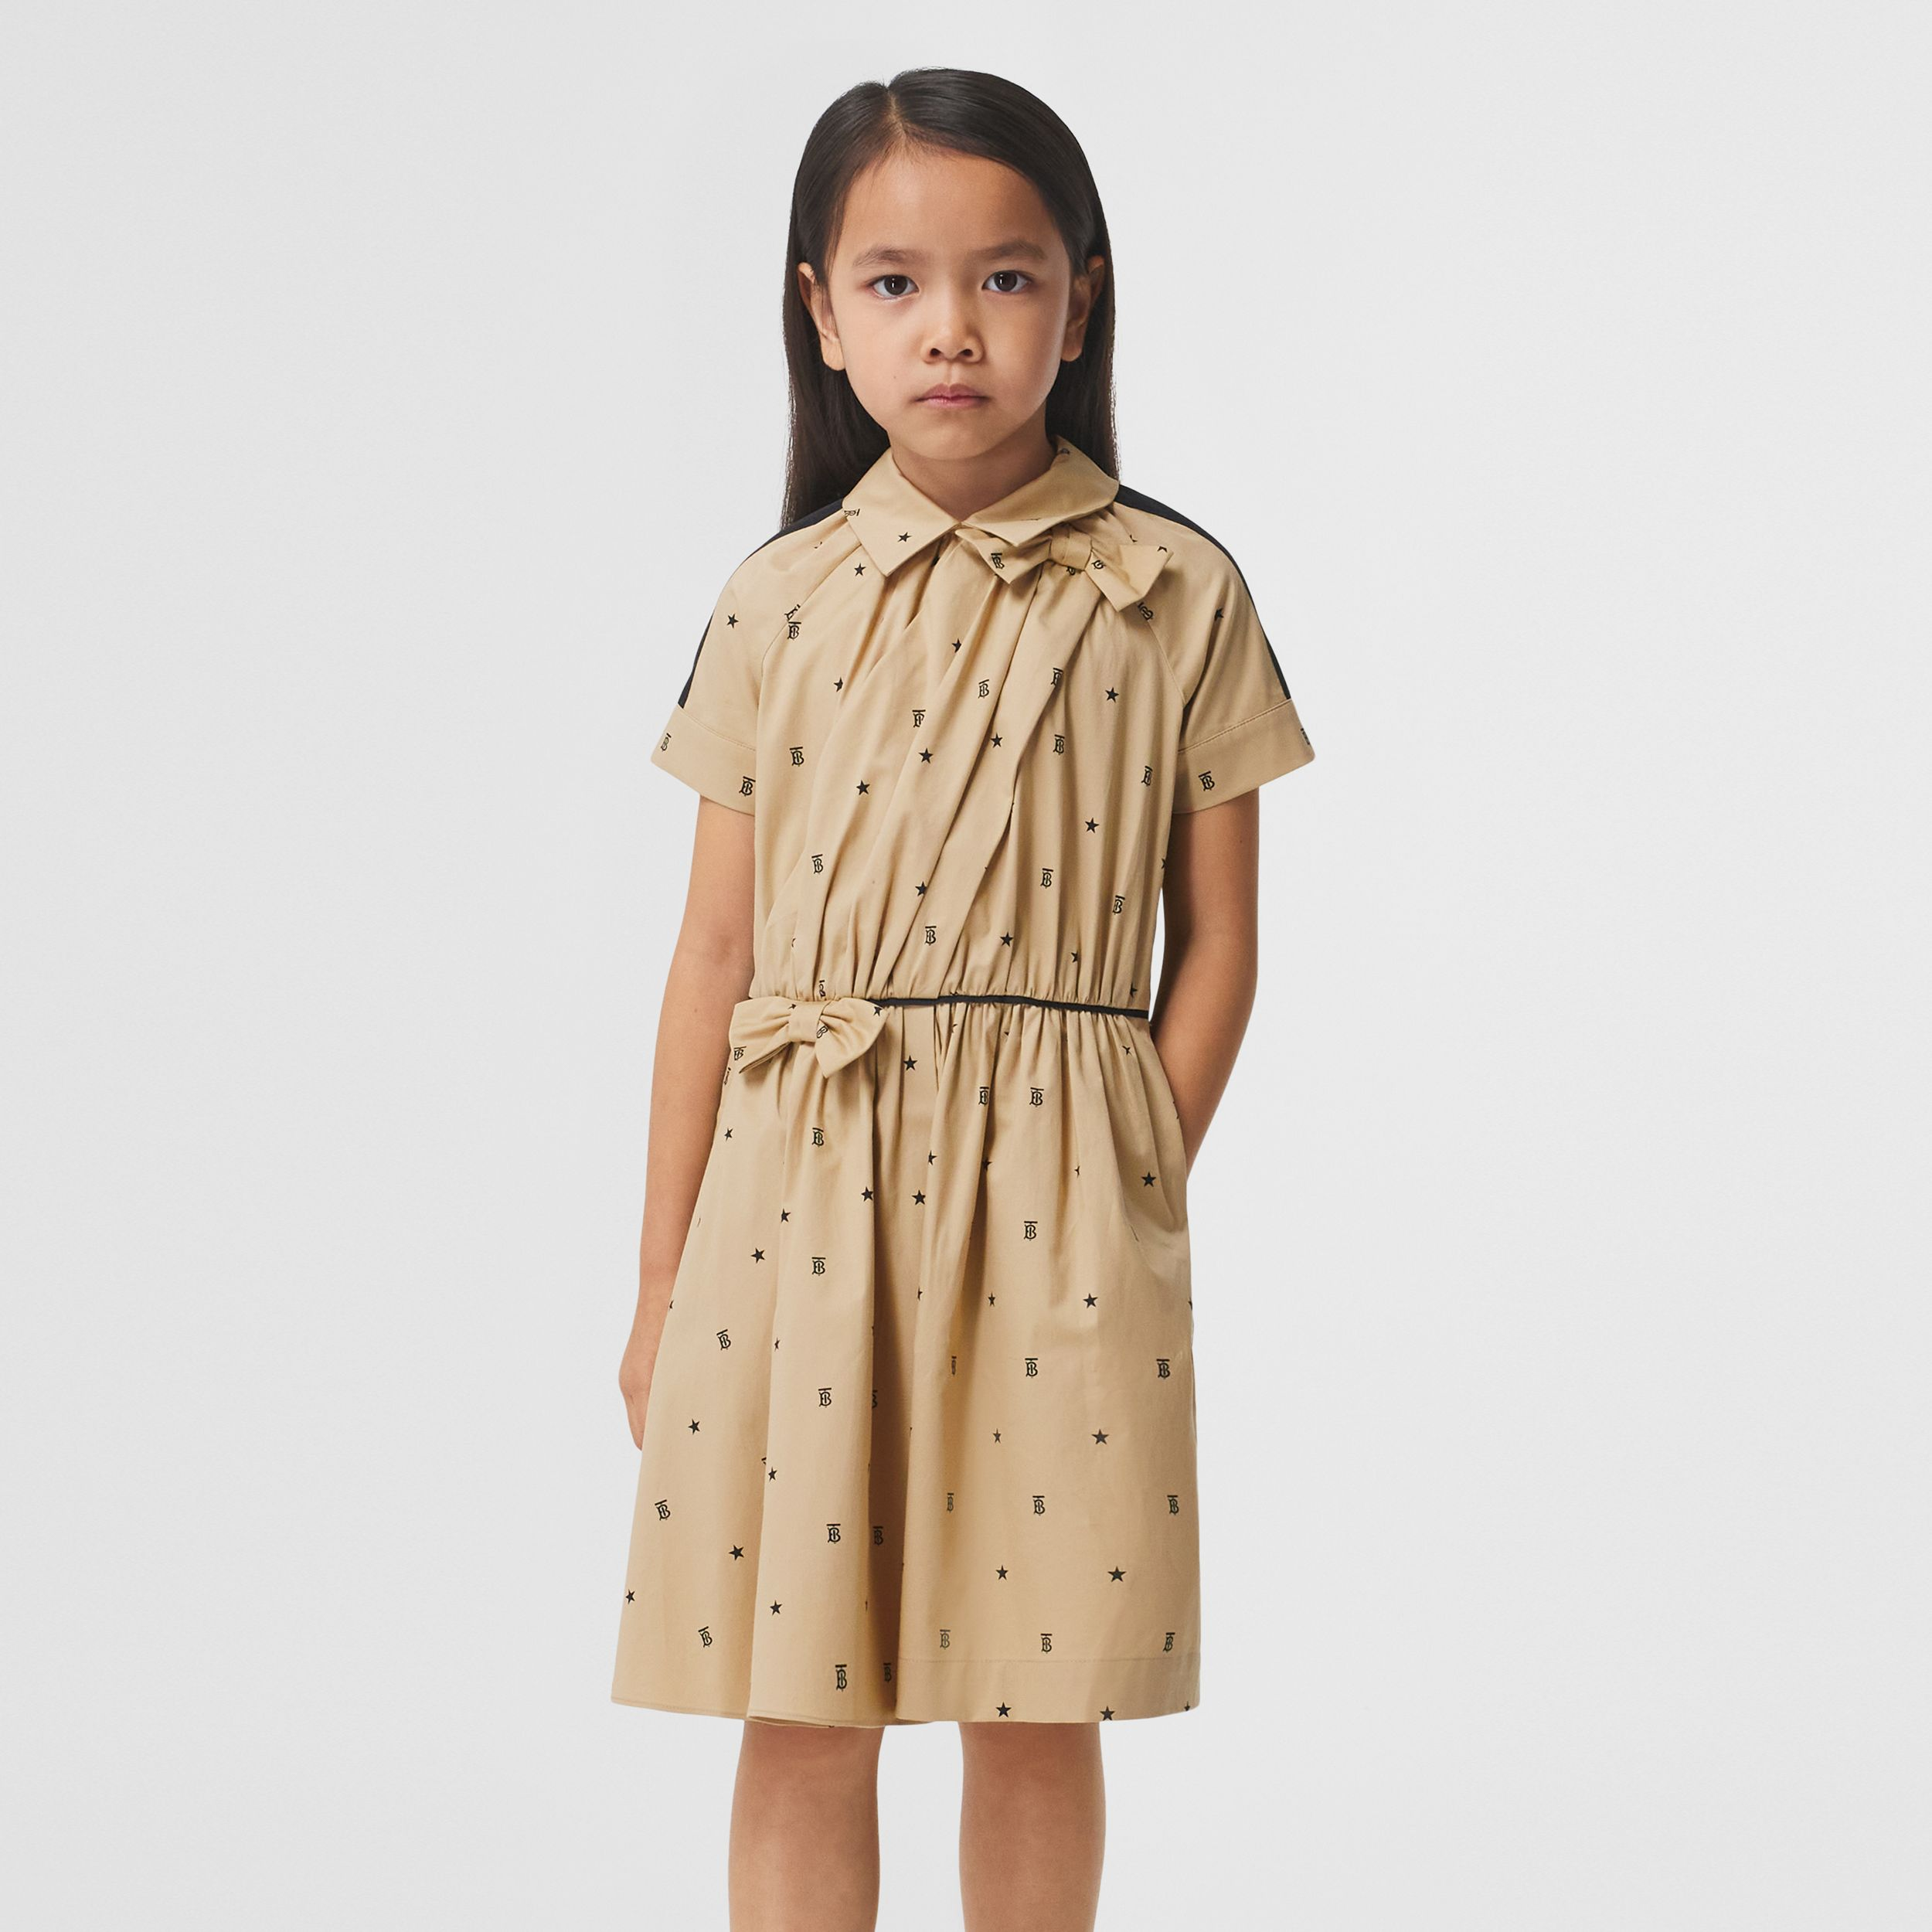 Star and Monogram Motif Stretch Cotton Dress in Sand | Burberry - 3